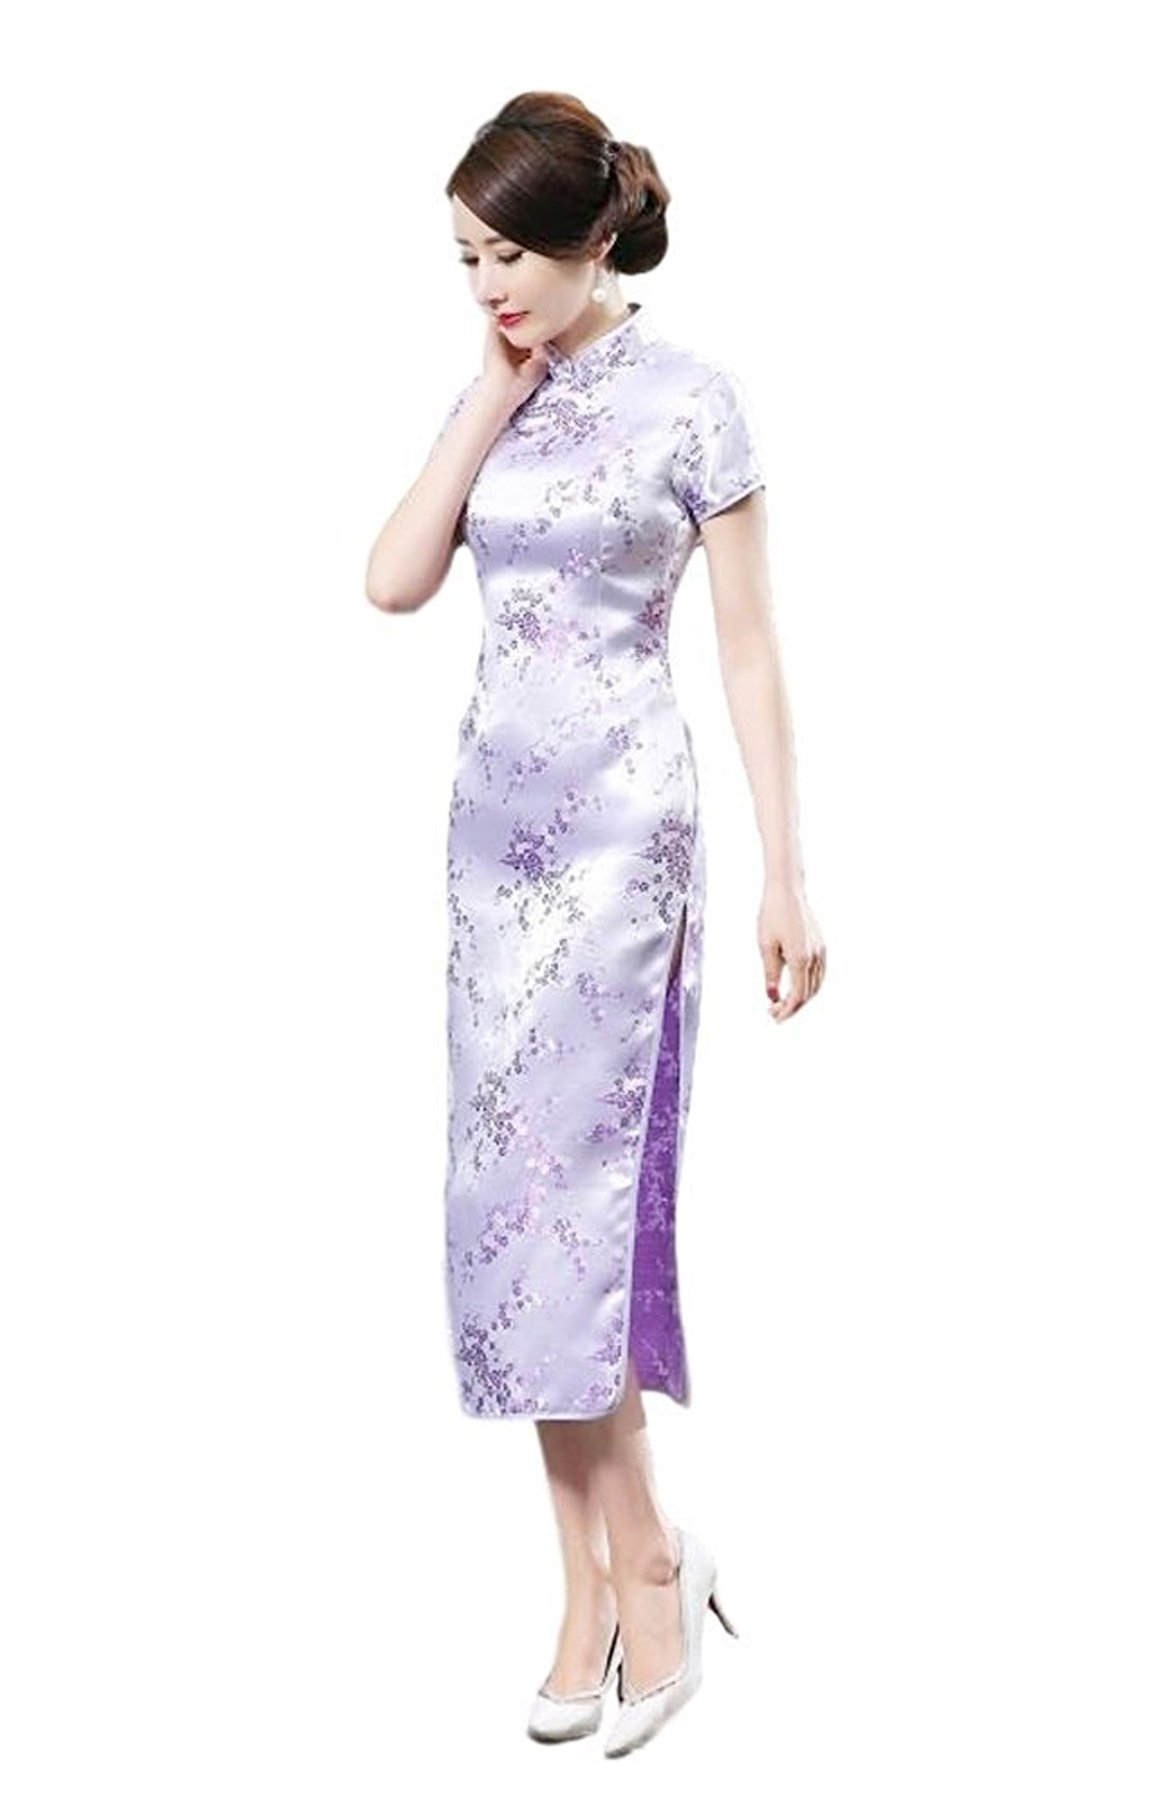 Maritchi Women's Long Chinese Wedding Dress Cheongsam Qipao Retro Long Flower Printing Elegance Beauty (6(ChineseL), Purple)